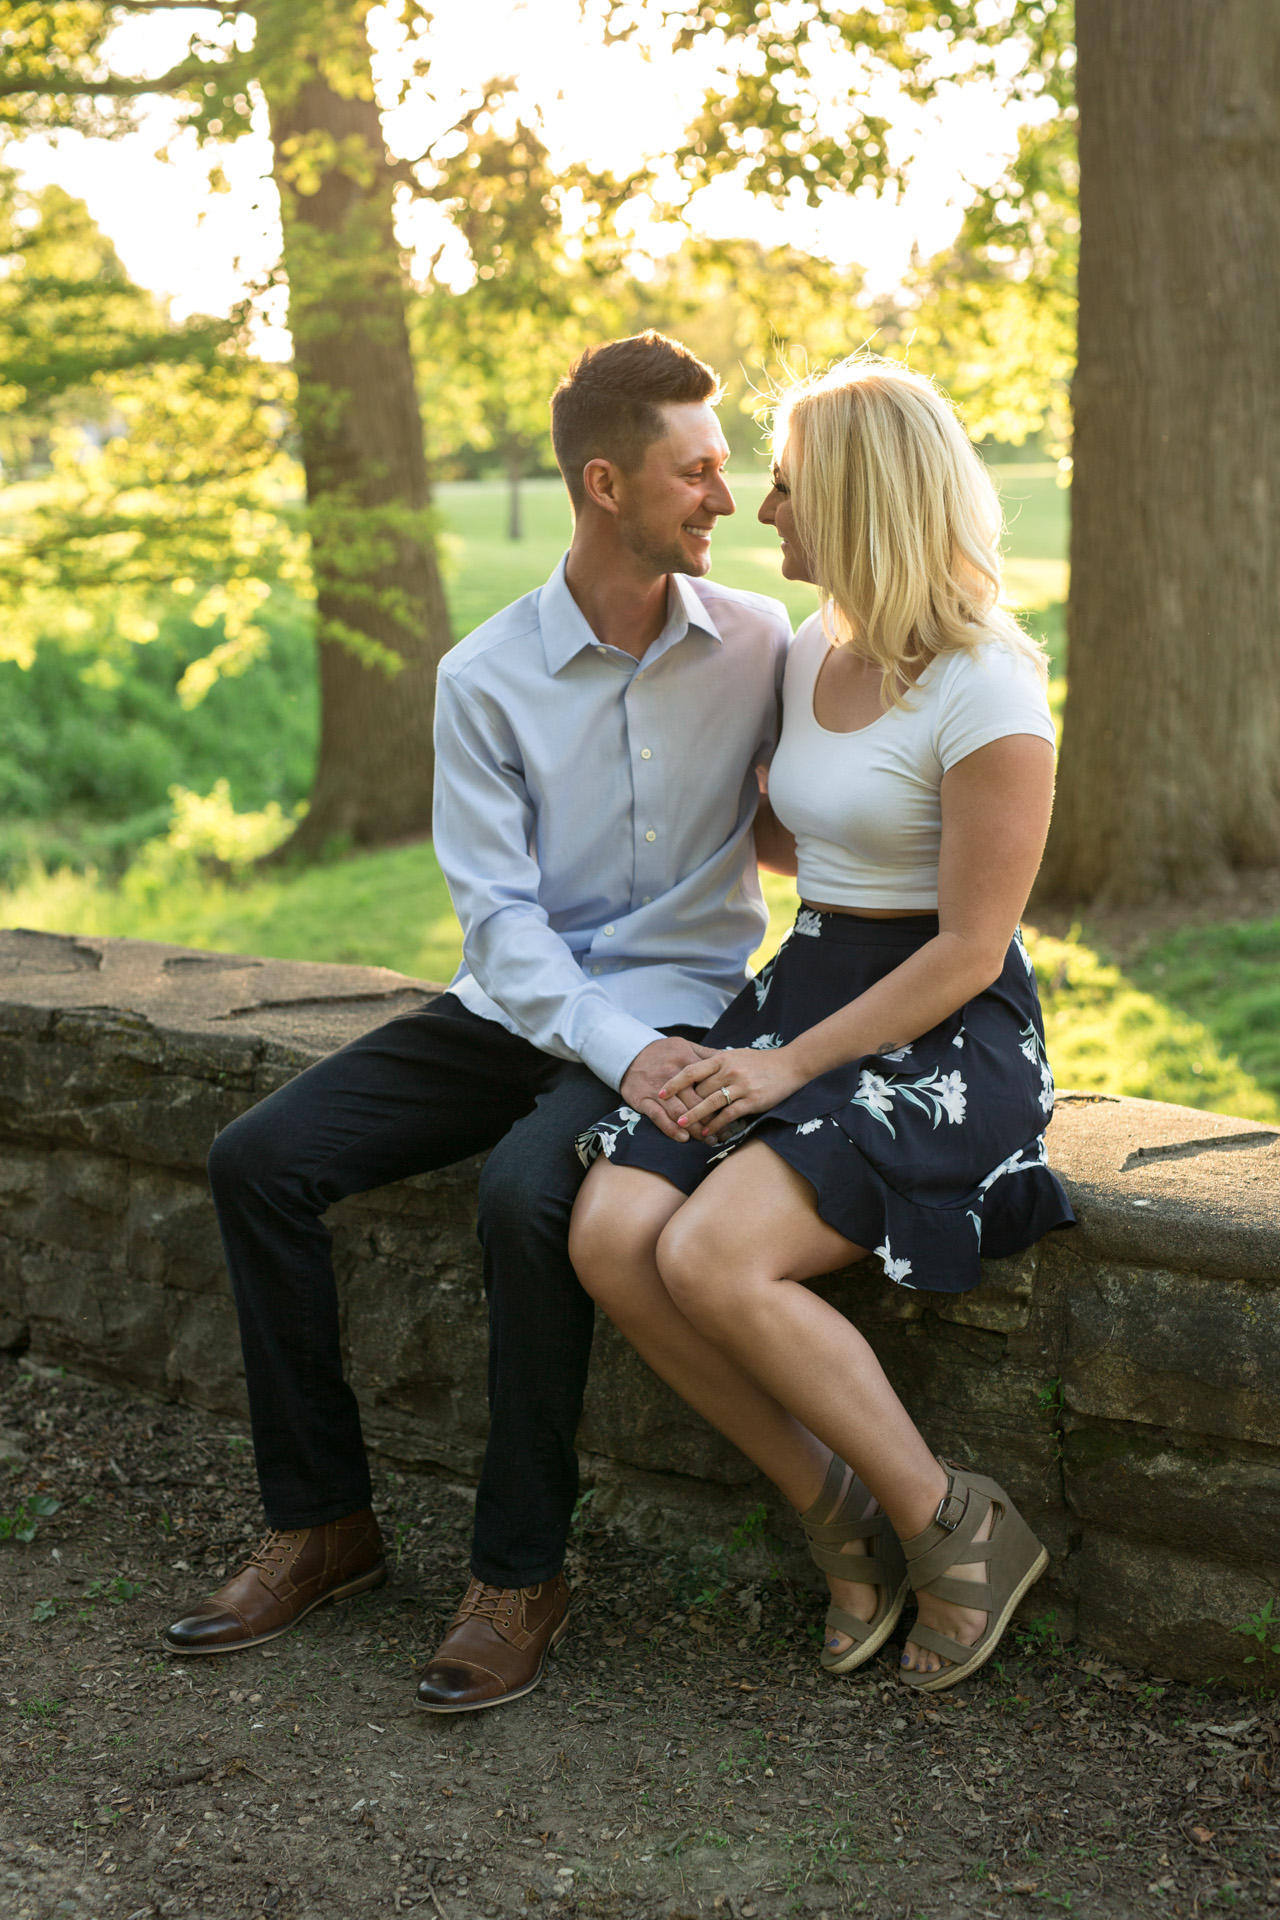 The Faits Peoria Bloomington Normal Central Illinois Unique Wedding Photographers Photographer Engagement Photography Uptown Normal Engagement Volleyball engagement-14.jpg